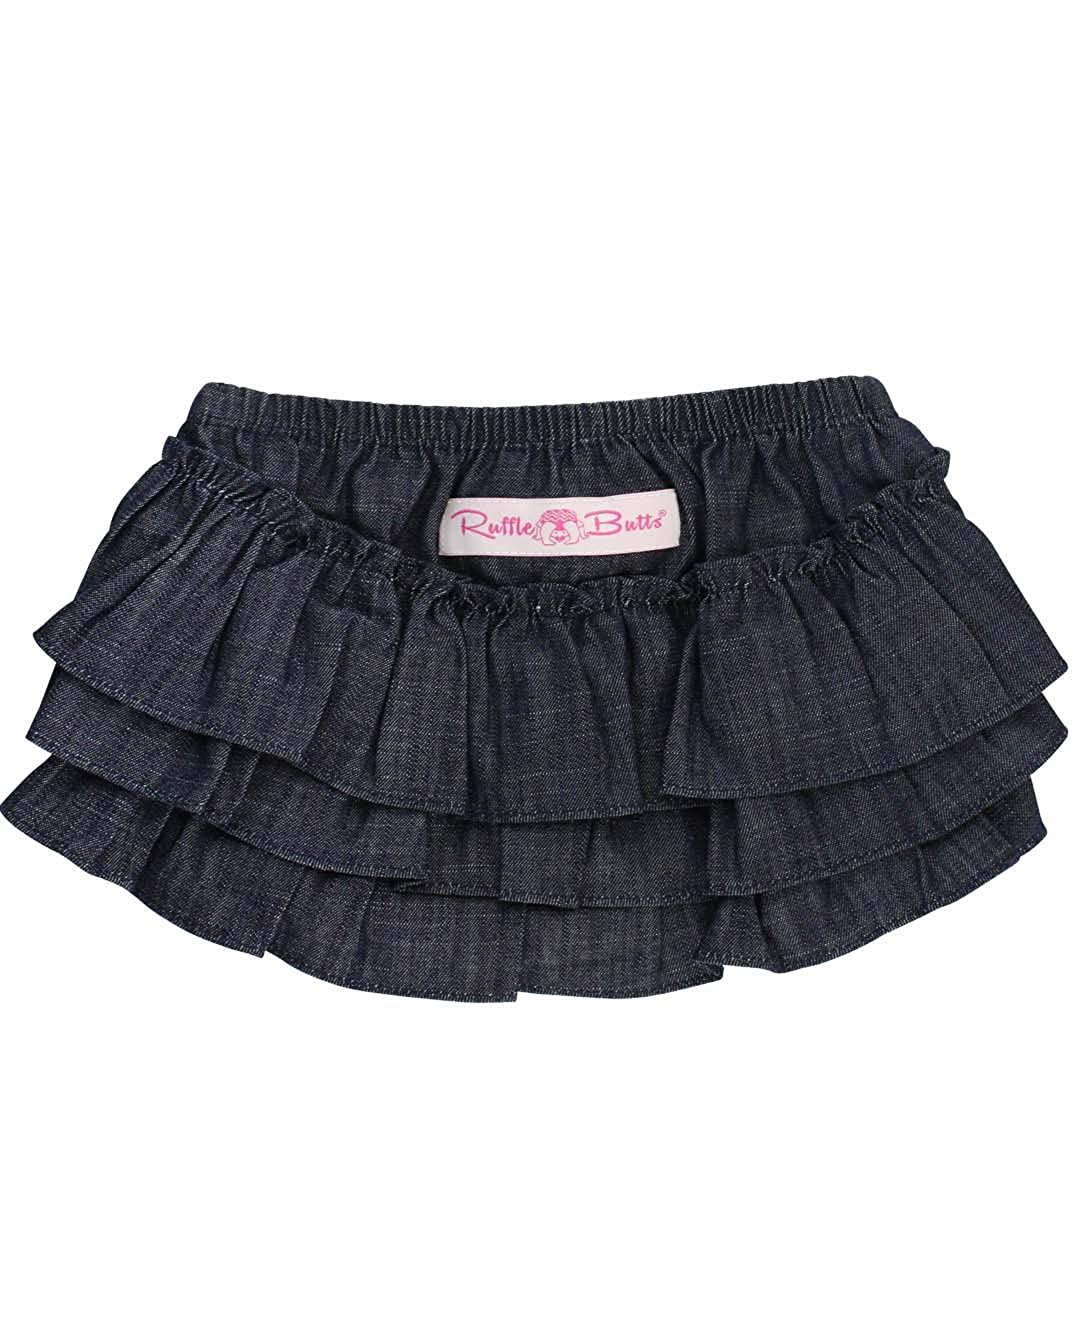 RuffleButts Baby/Toddler Girls Denim Ruffle Skirted Bloomer RBDYYXX-SKRT-SC-BABY